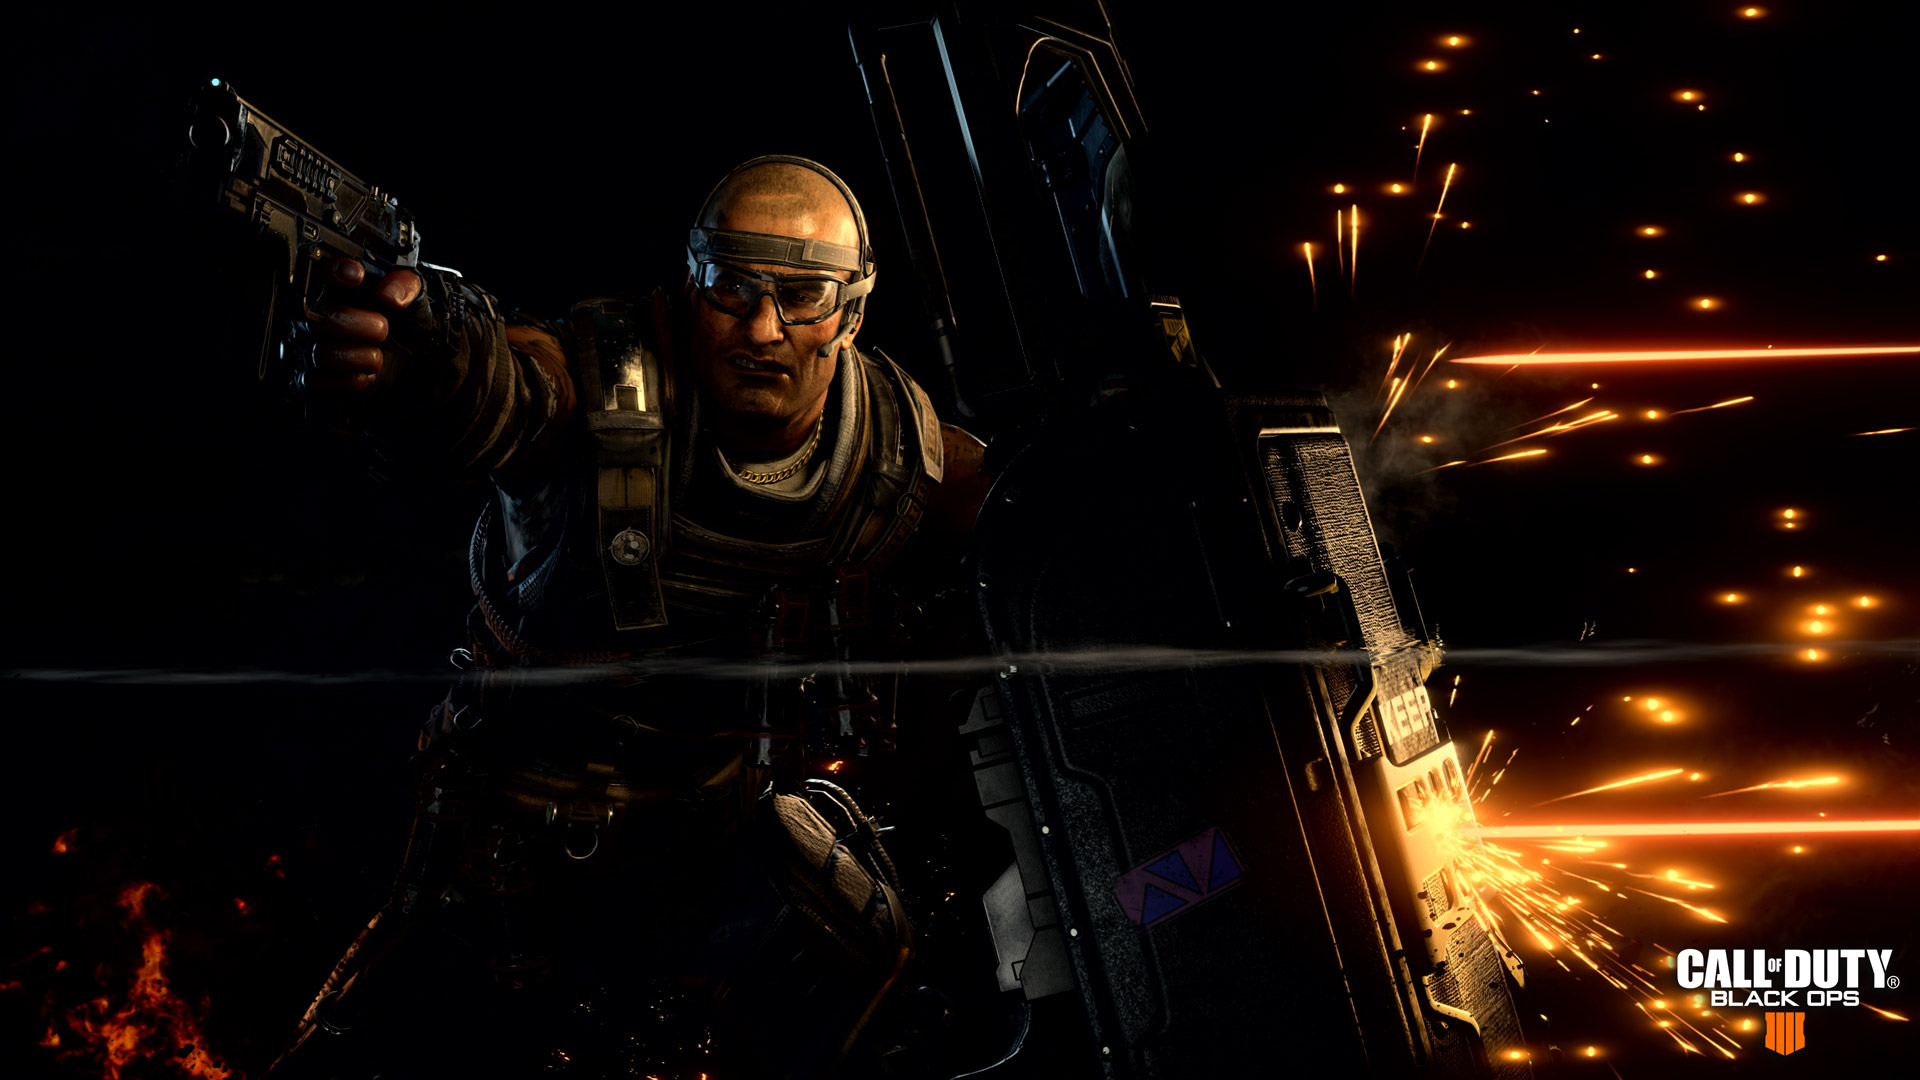 Free Call of Duty: Black Ops 4 Wallpaper in 1920x1080